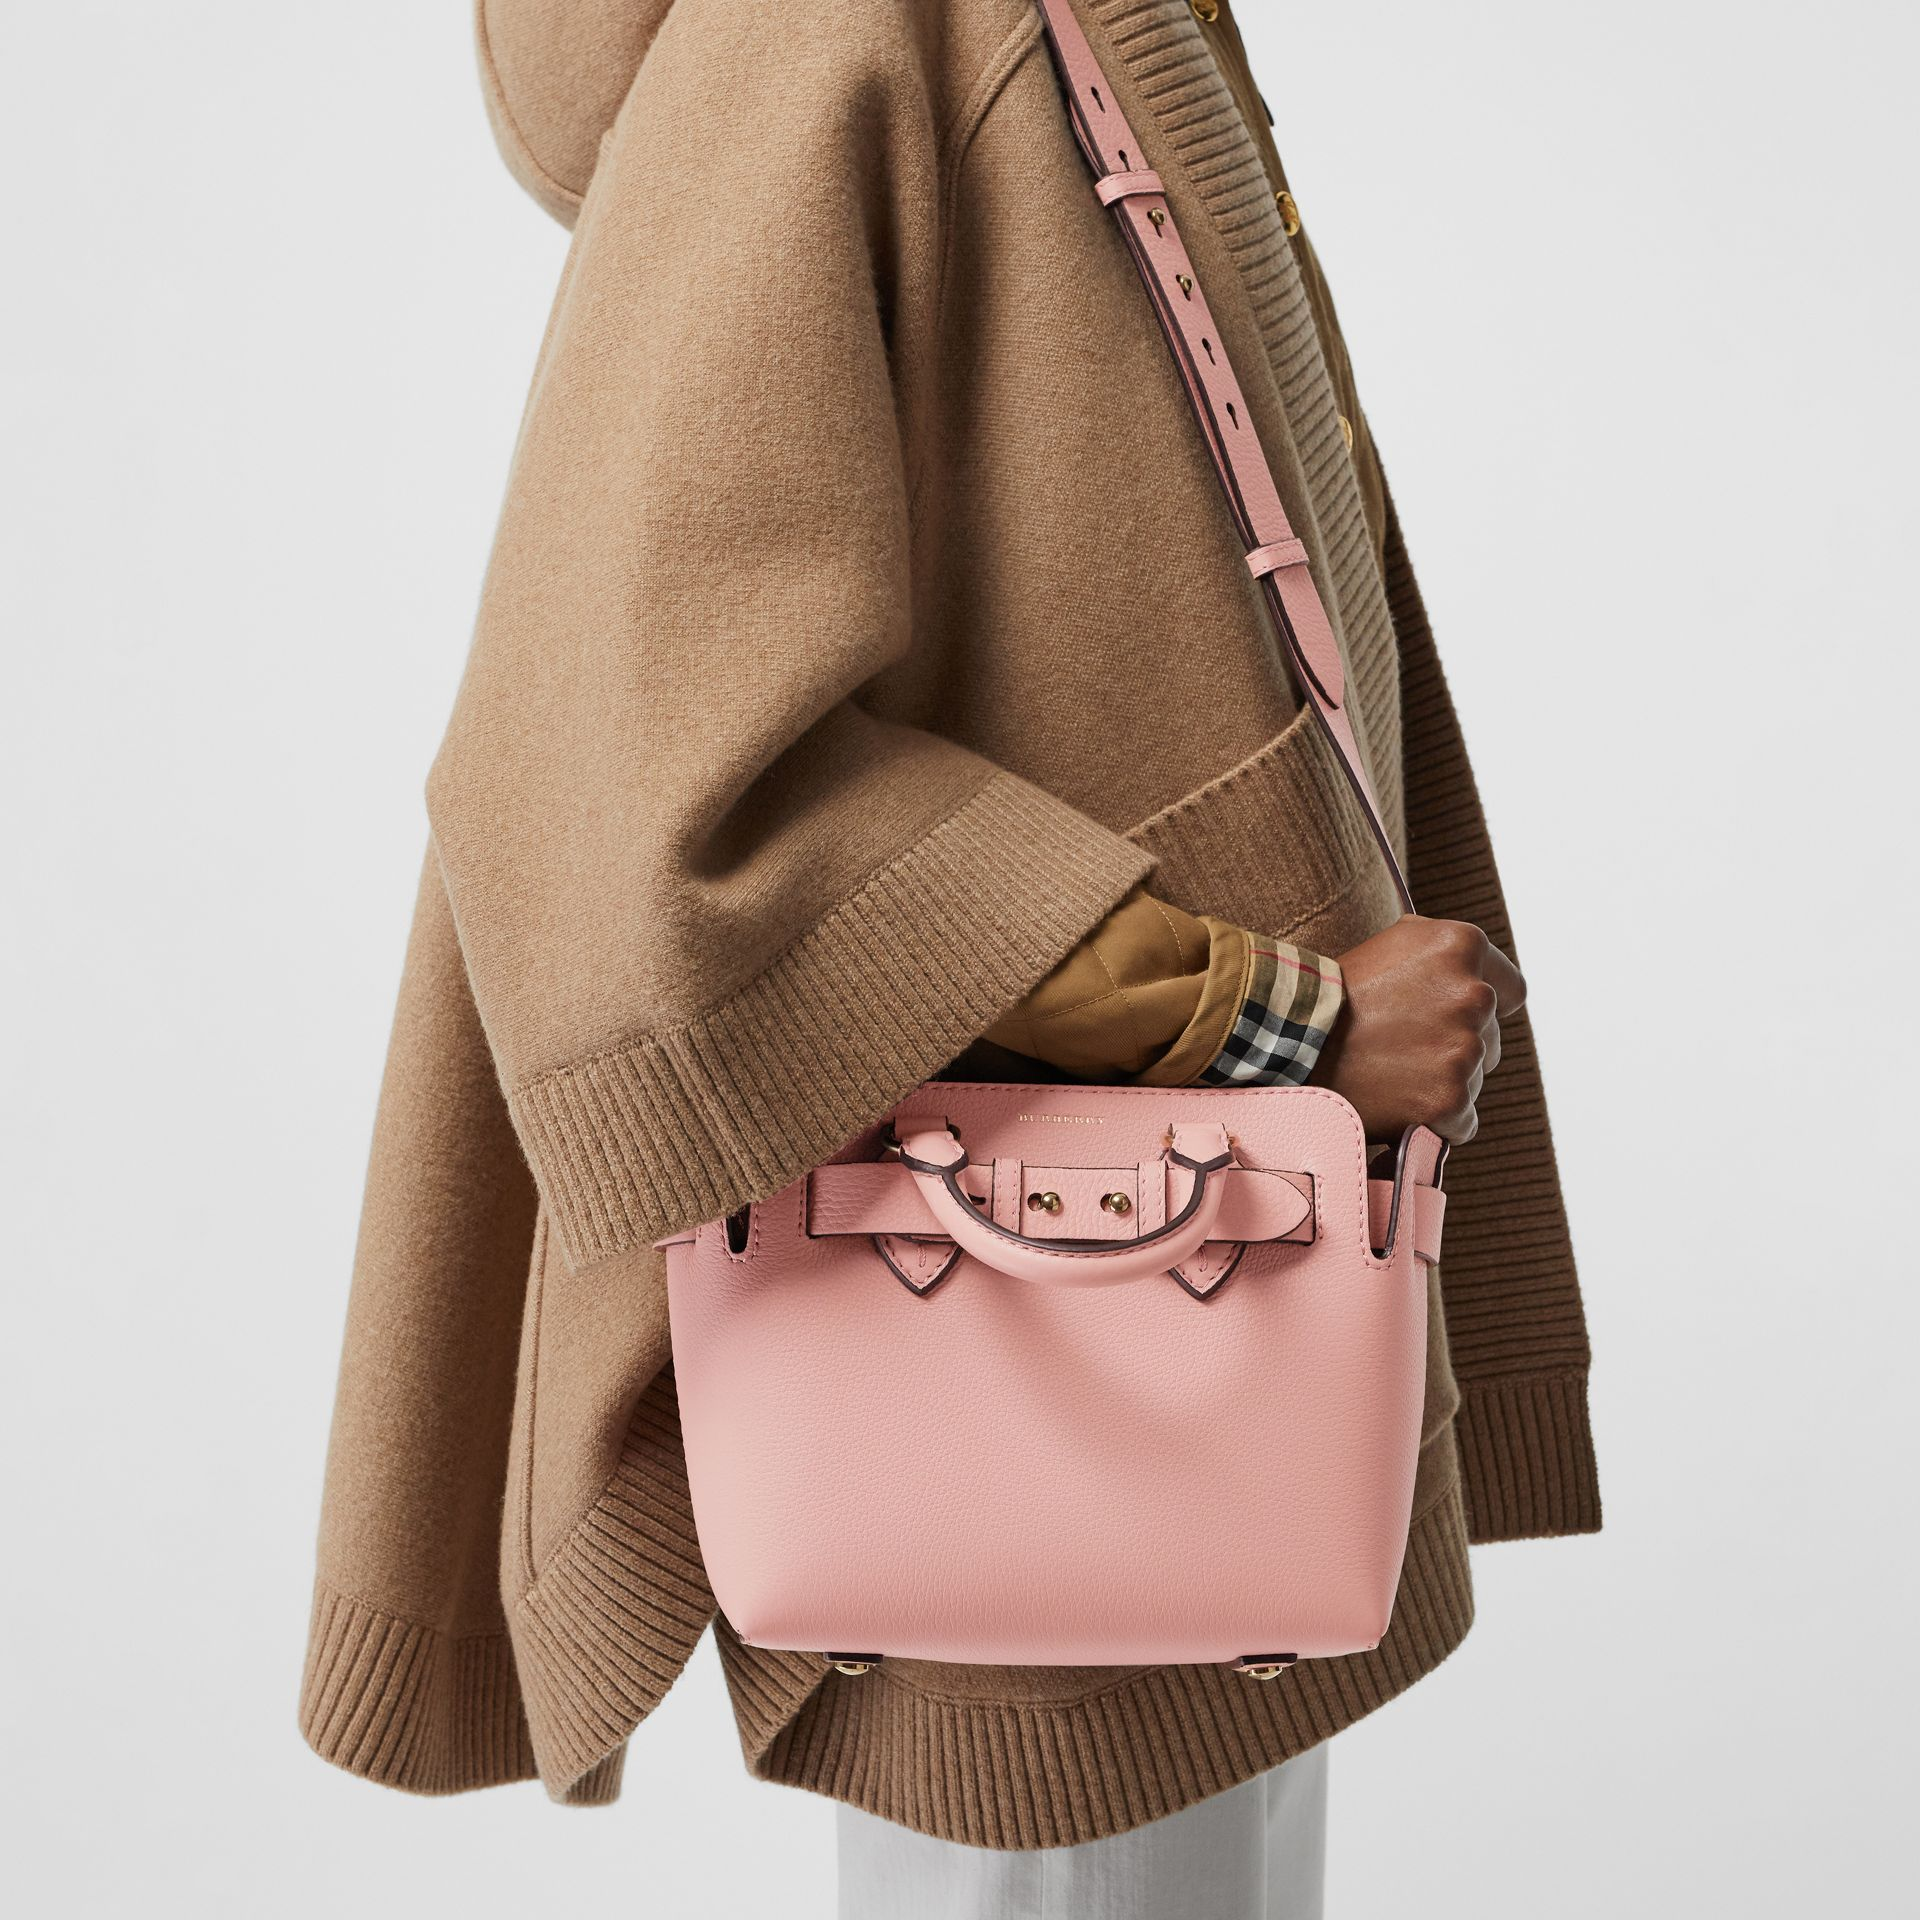 Borsa The Belt mini in pelle (Rosa Cenere) - Donna | Burberry - immagine della galleria 3